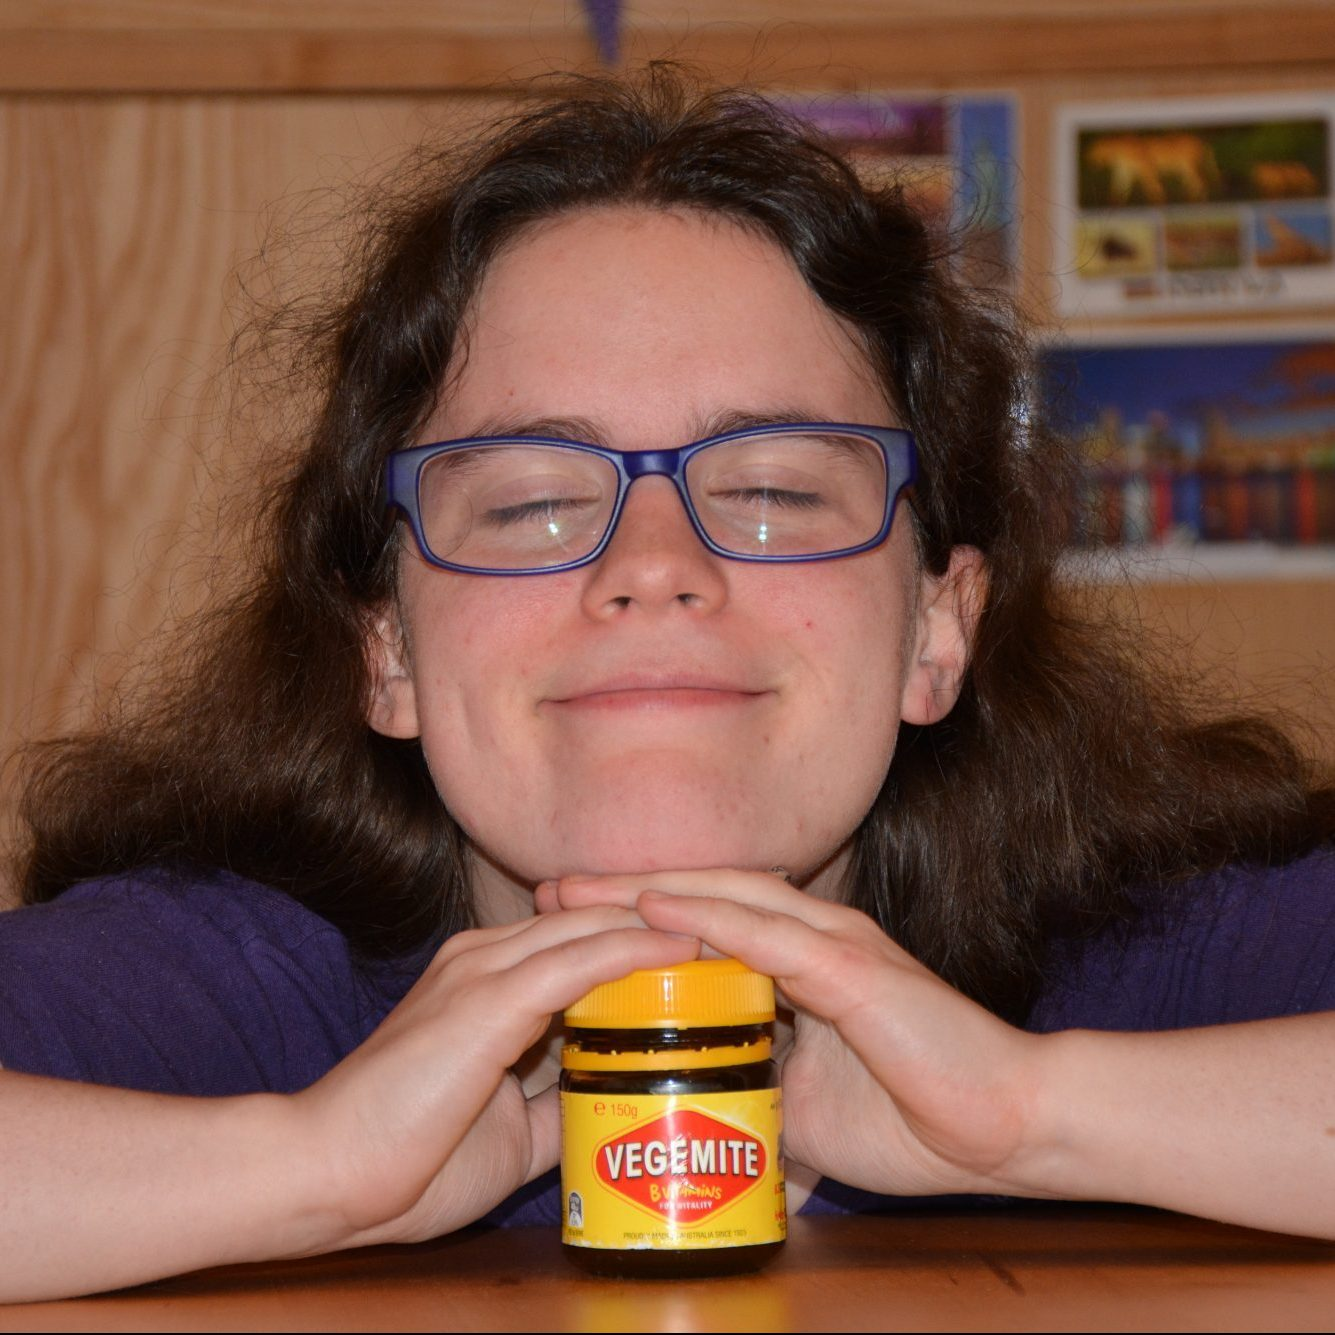 World Tour, Day 268: Let's Catch Up Using Vegemite Pics!